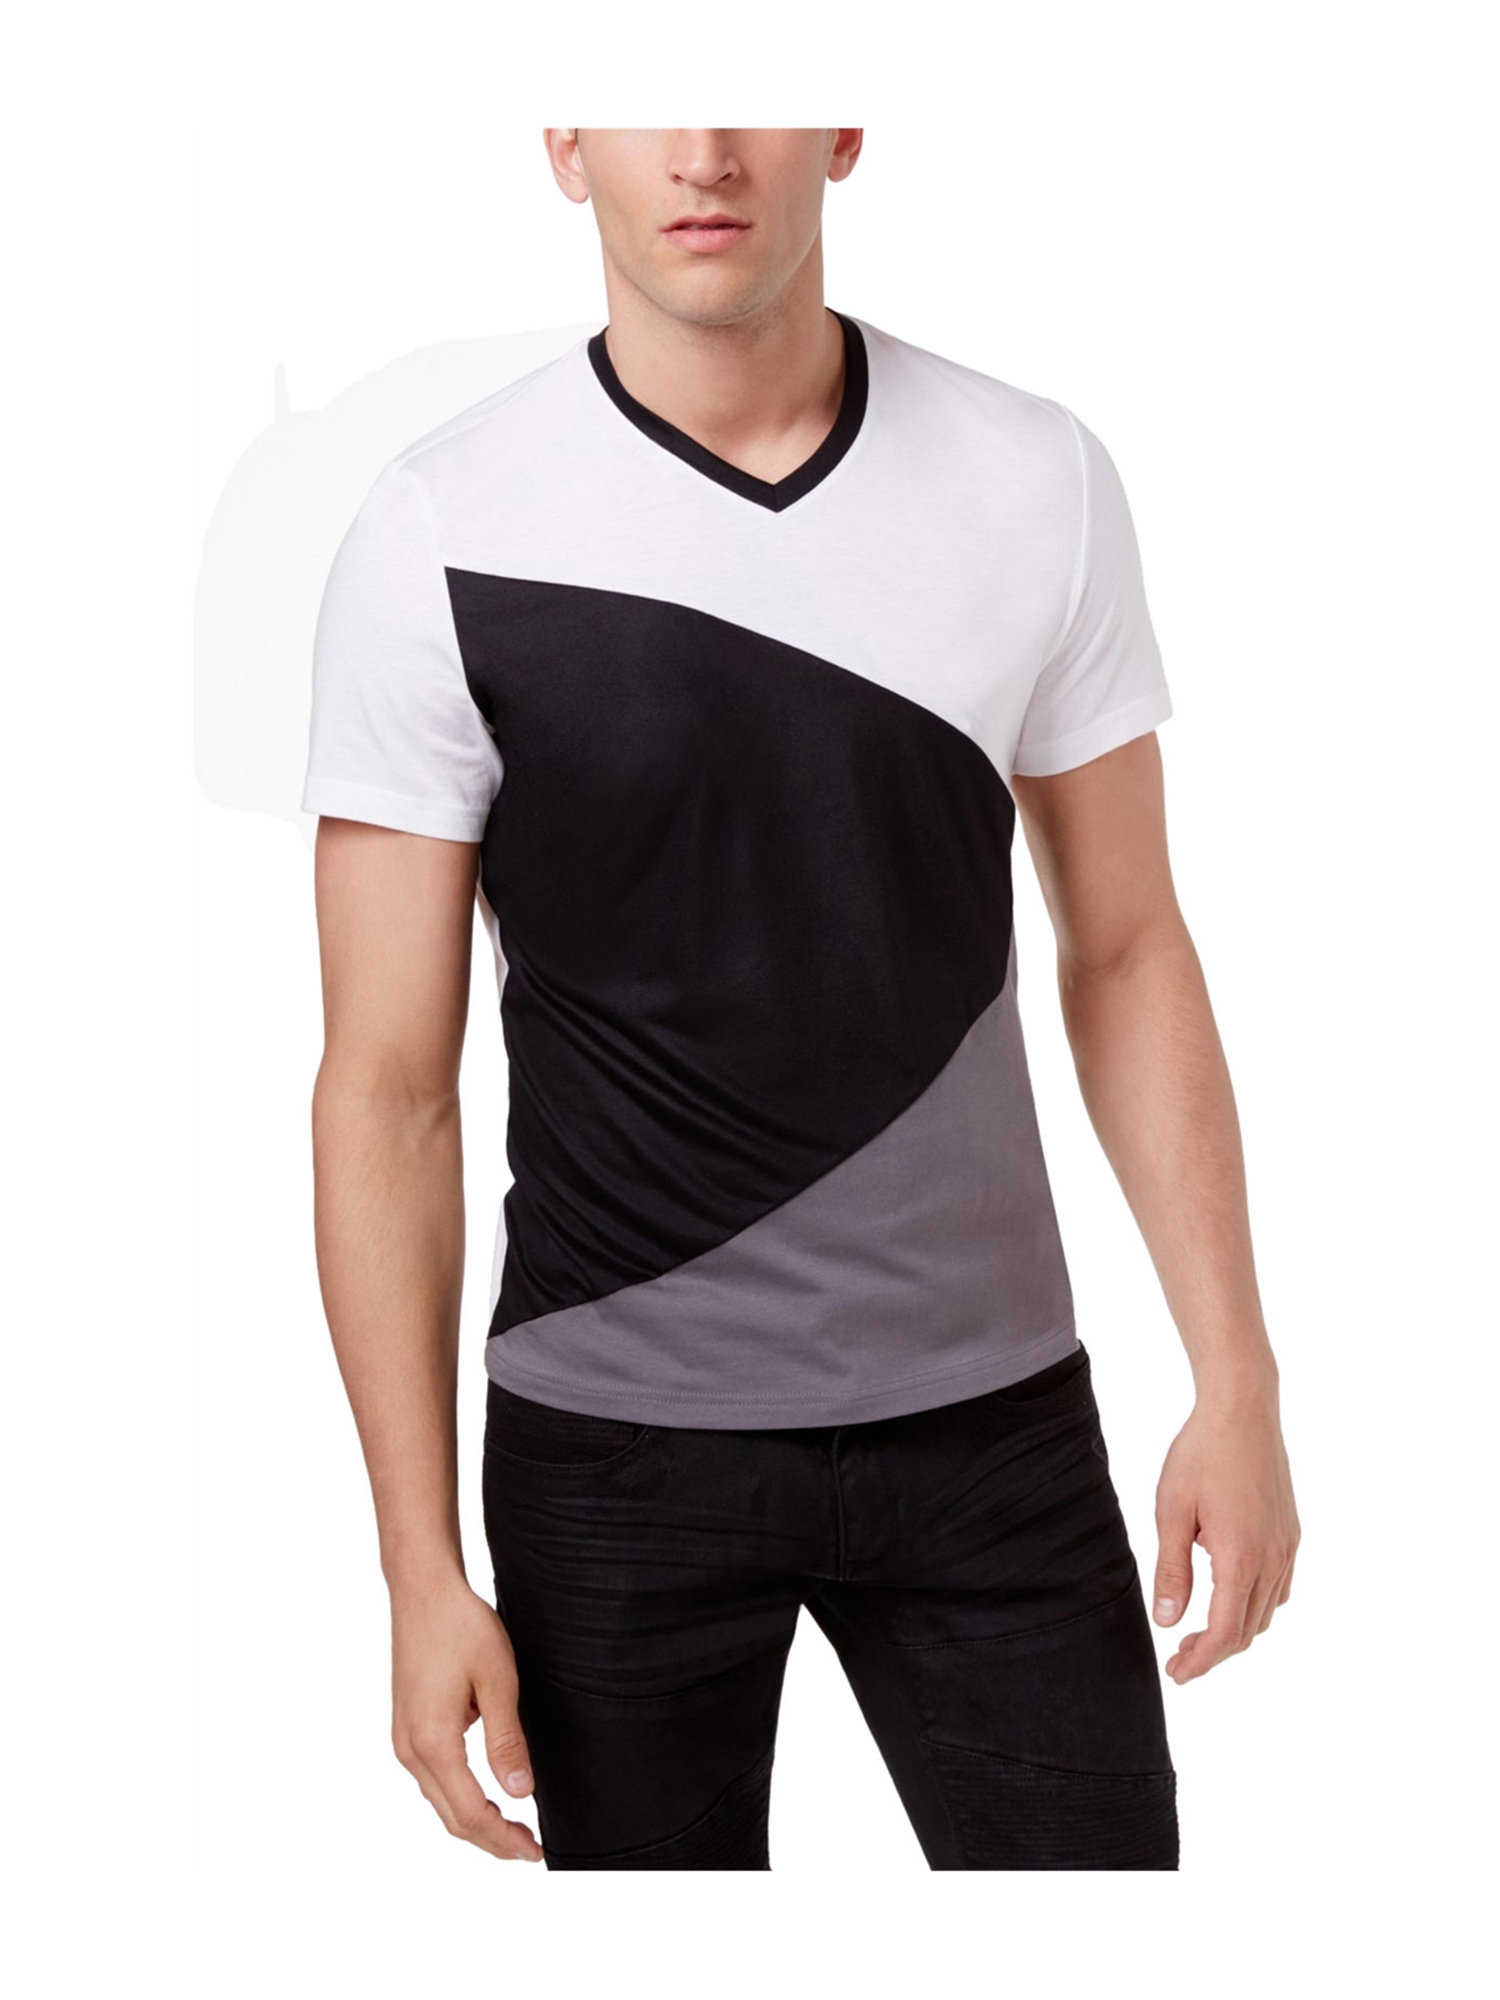 I-N-C Mens Diagonal Colorblocked Basic T-Shirt